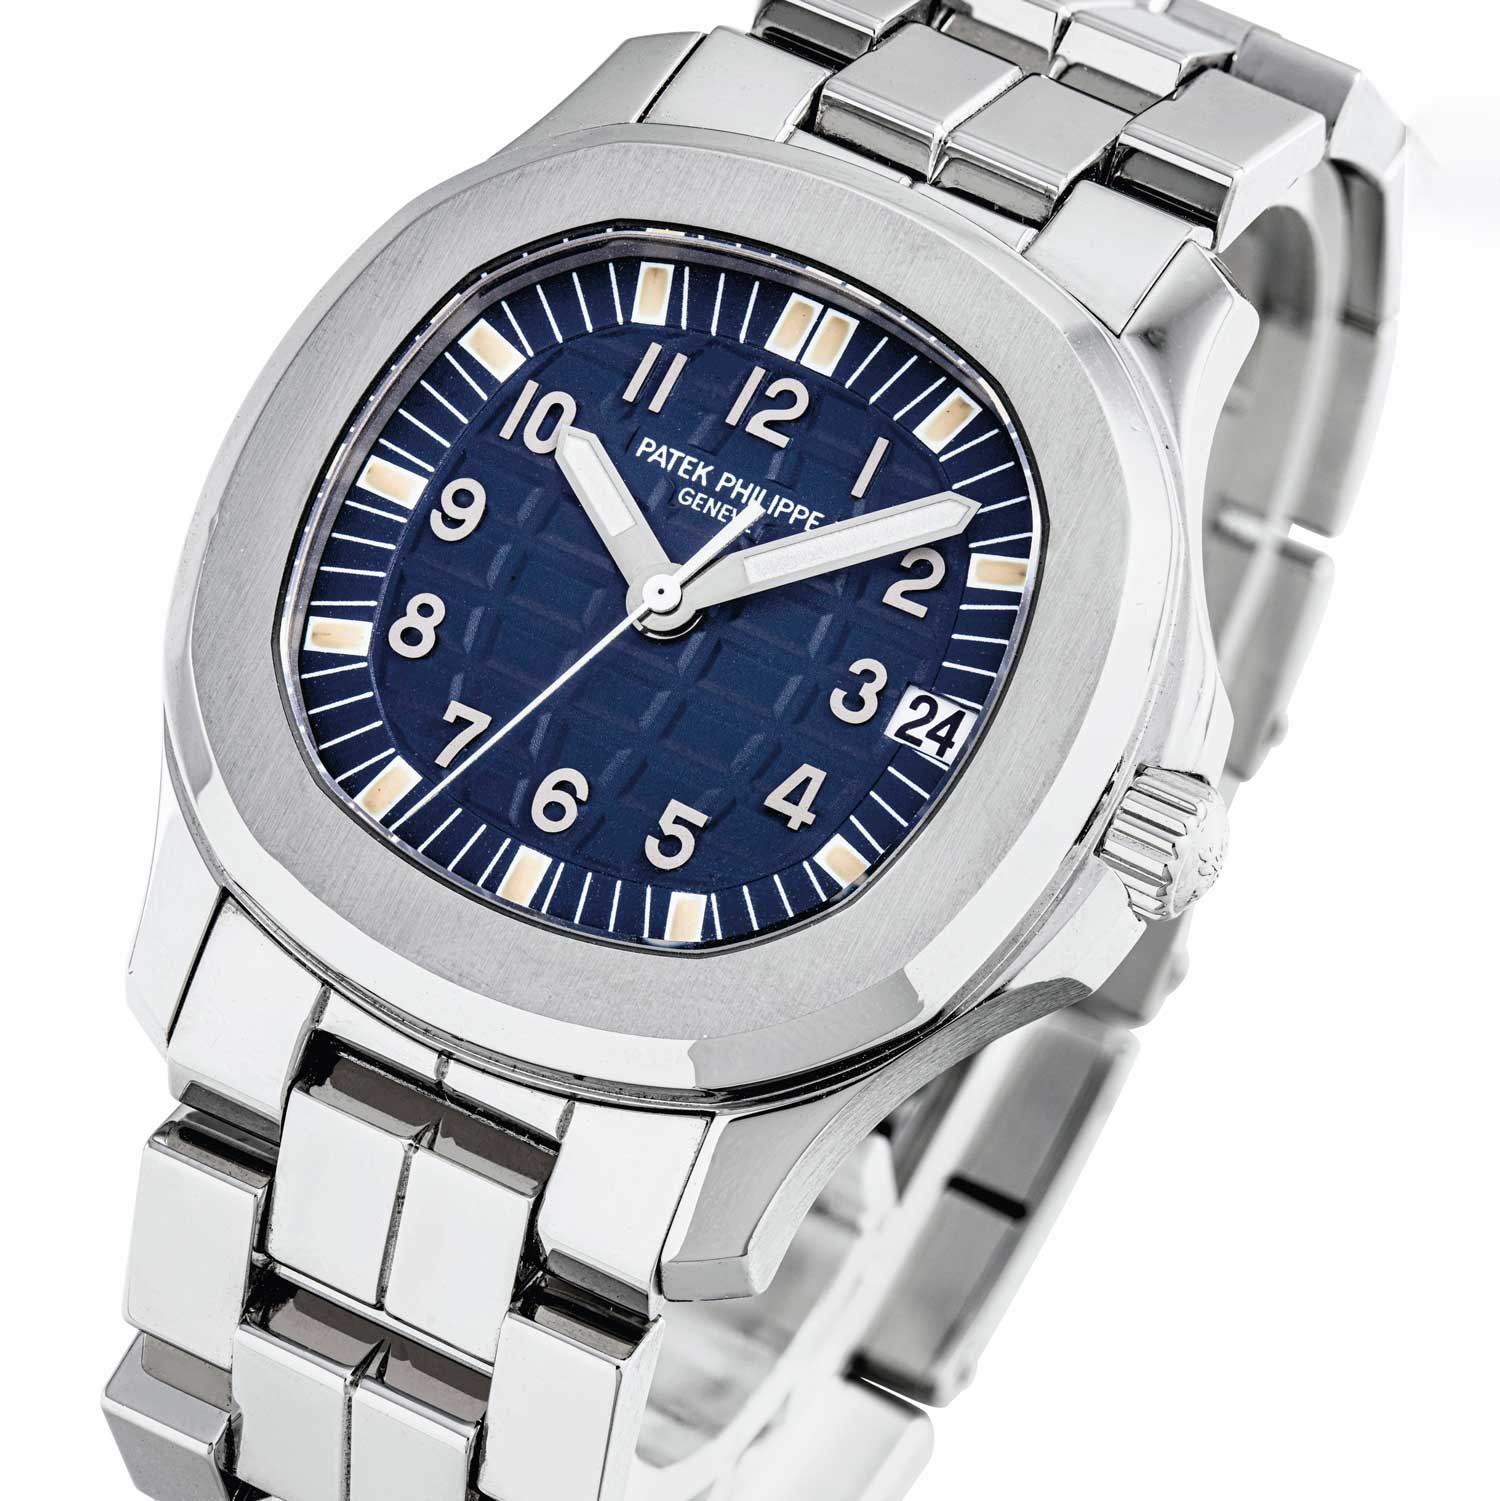 Lot 2443: Patek Philippe Aquanaut with Blue Dial, Limited Edition for the Japanese Market